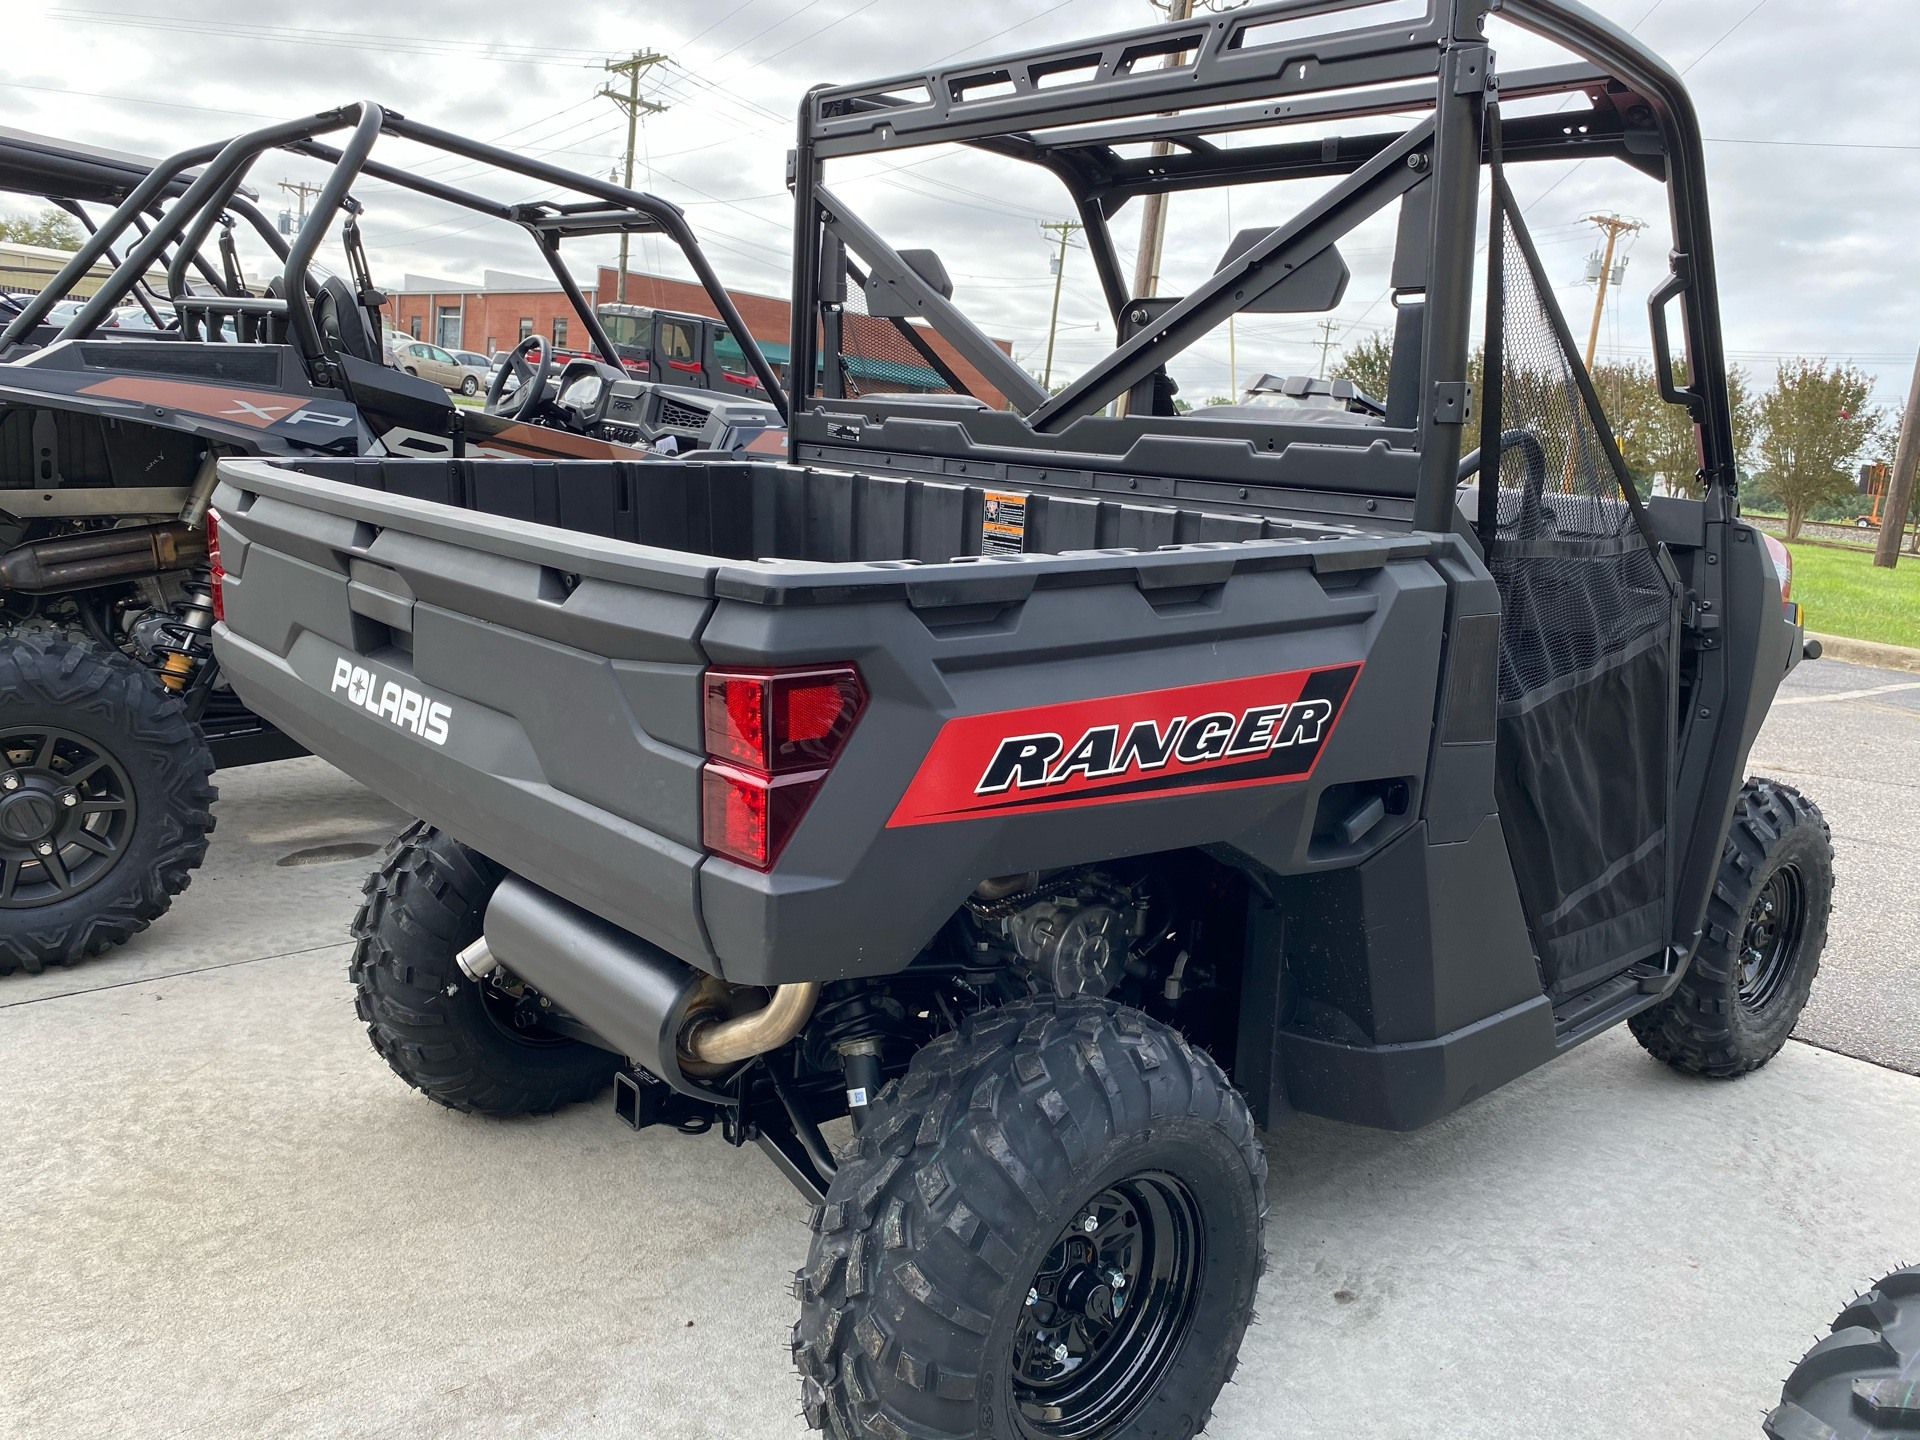 2021 Polaris Ranger 1000 EPS in Statesville, North Carolina - Photo 4